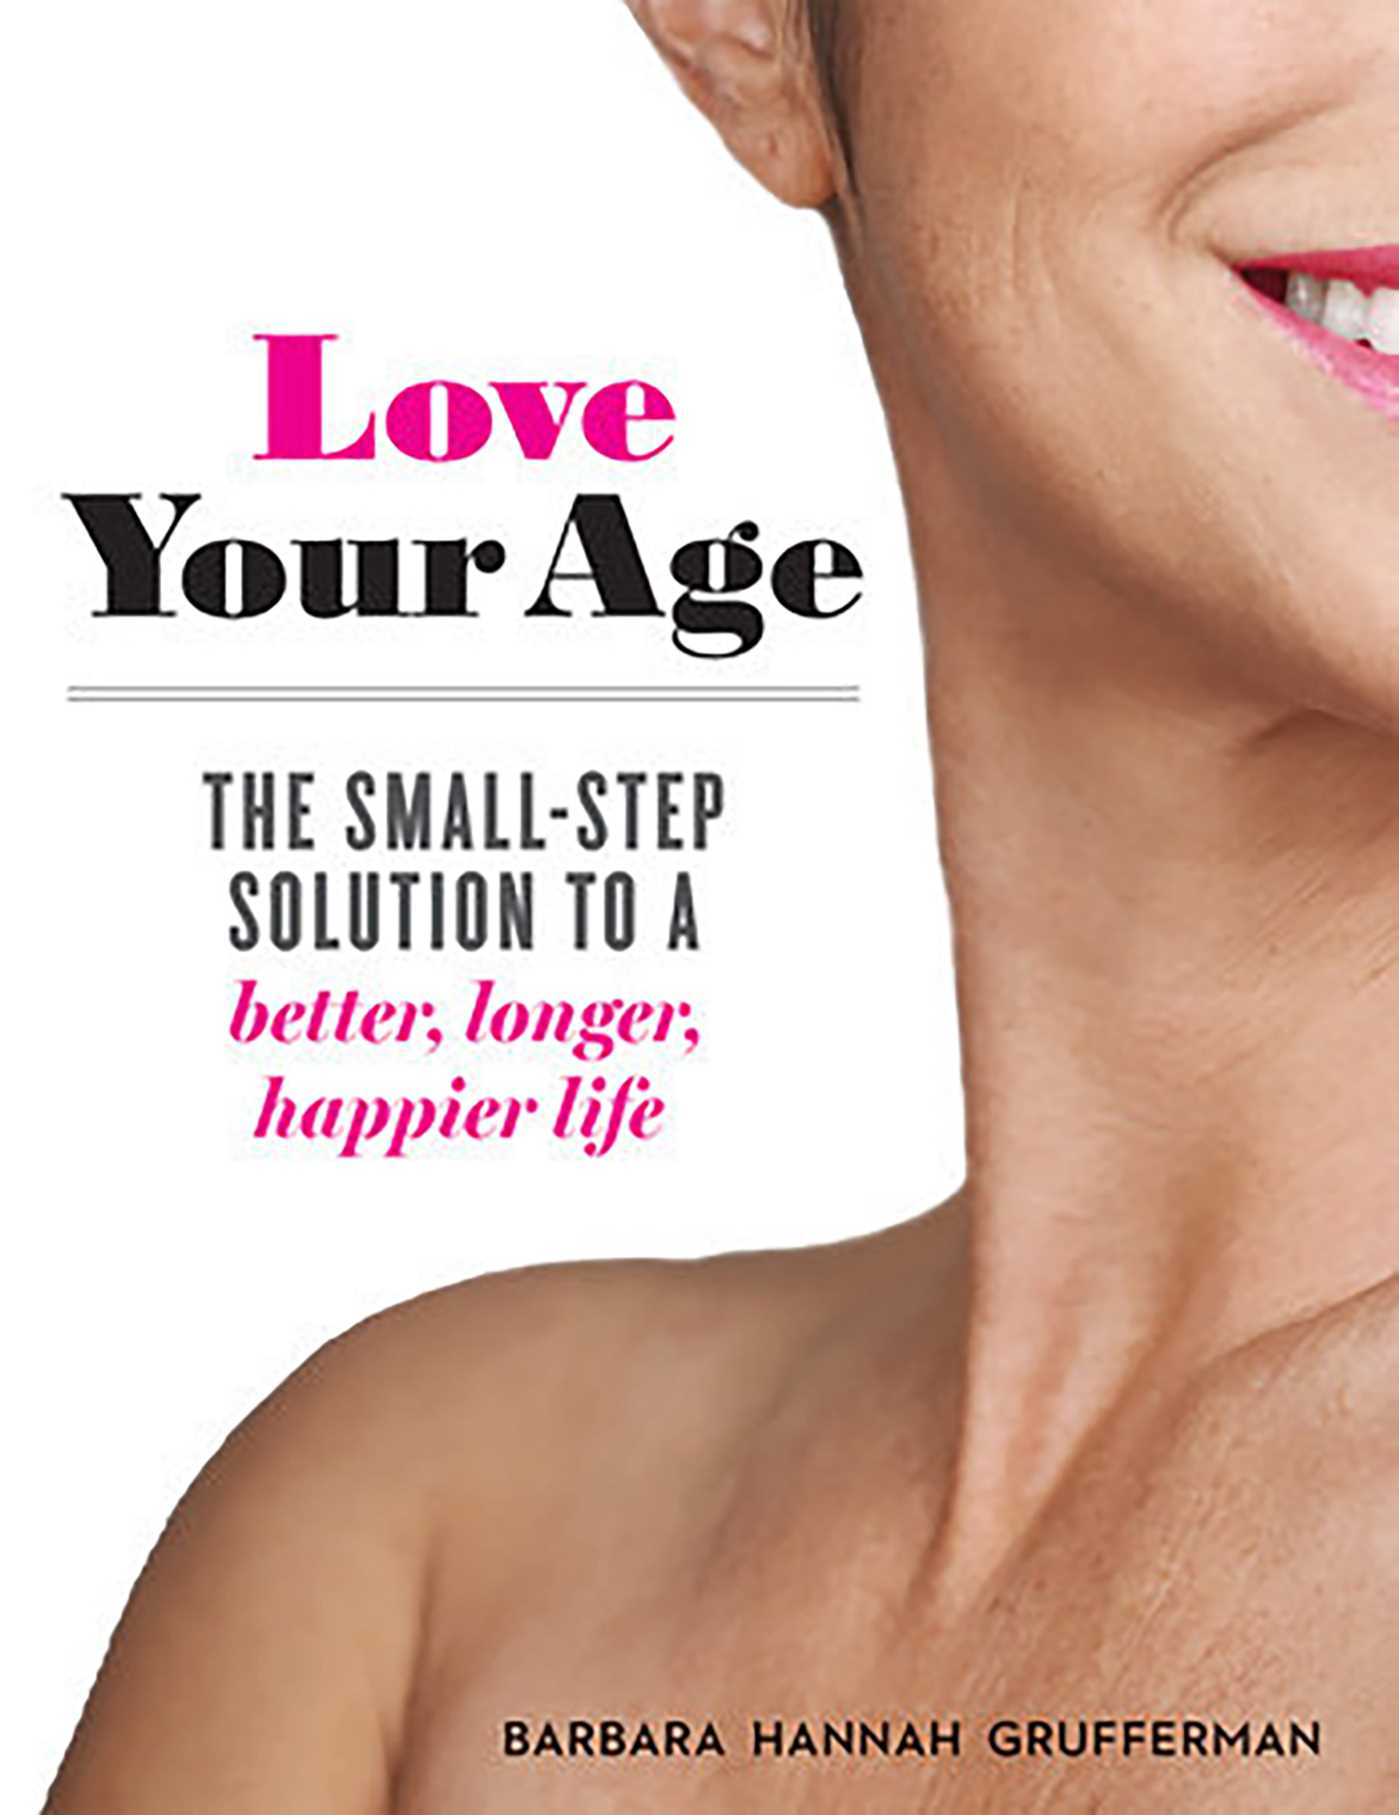 Love your age 9781426218323 hr